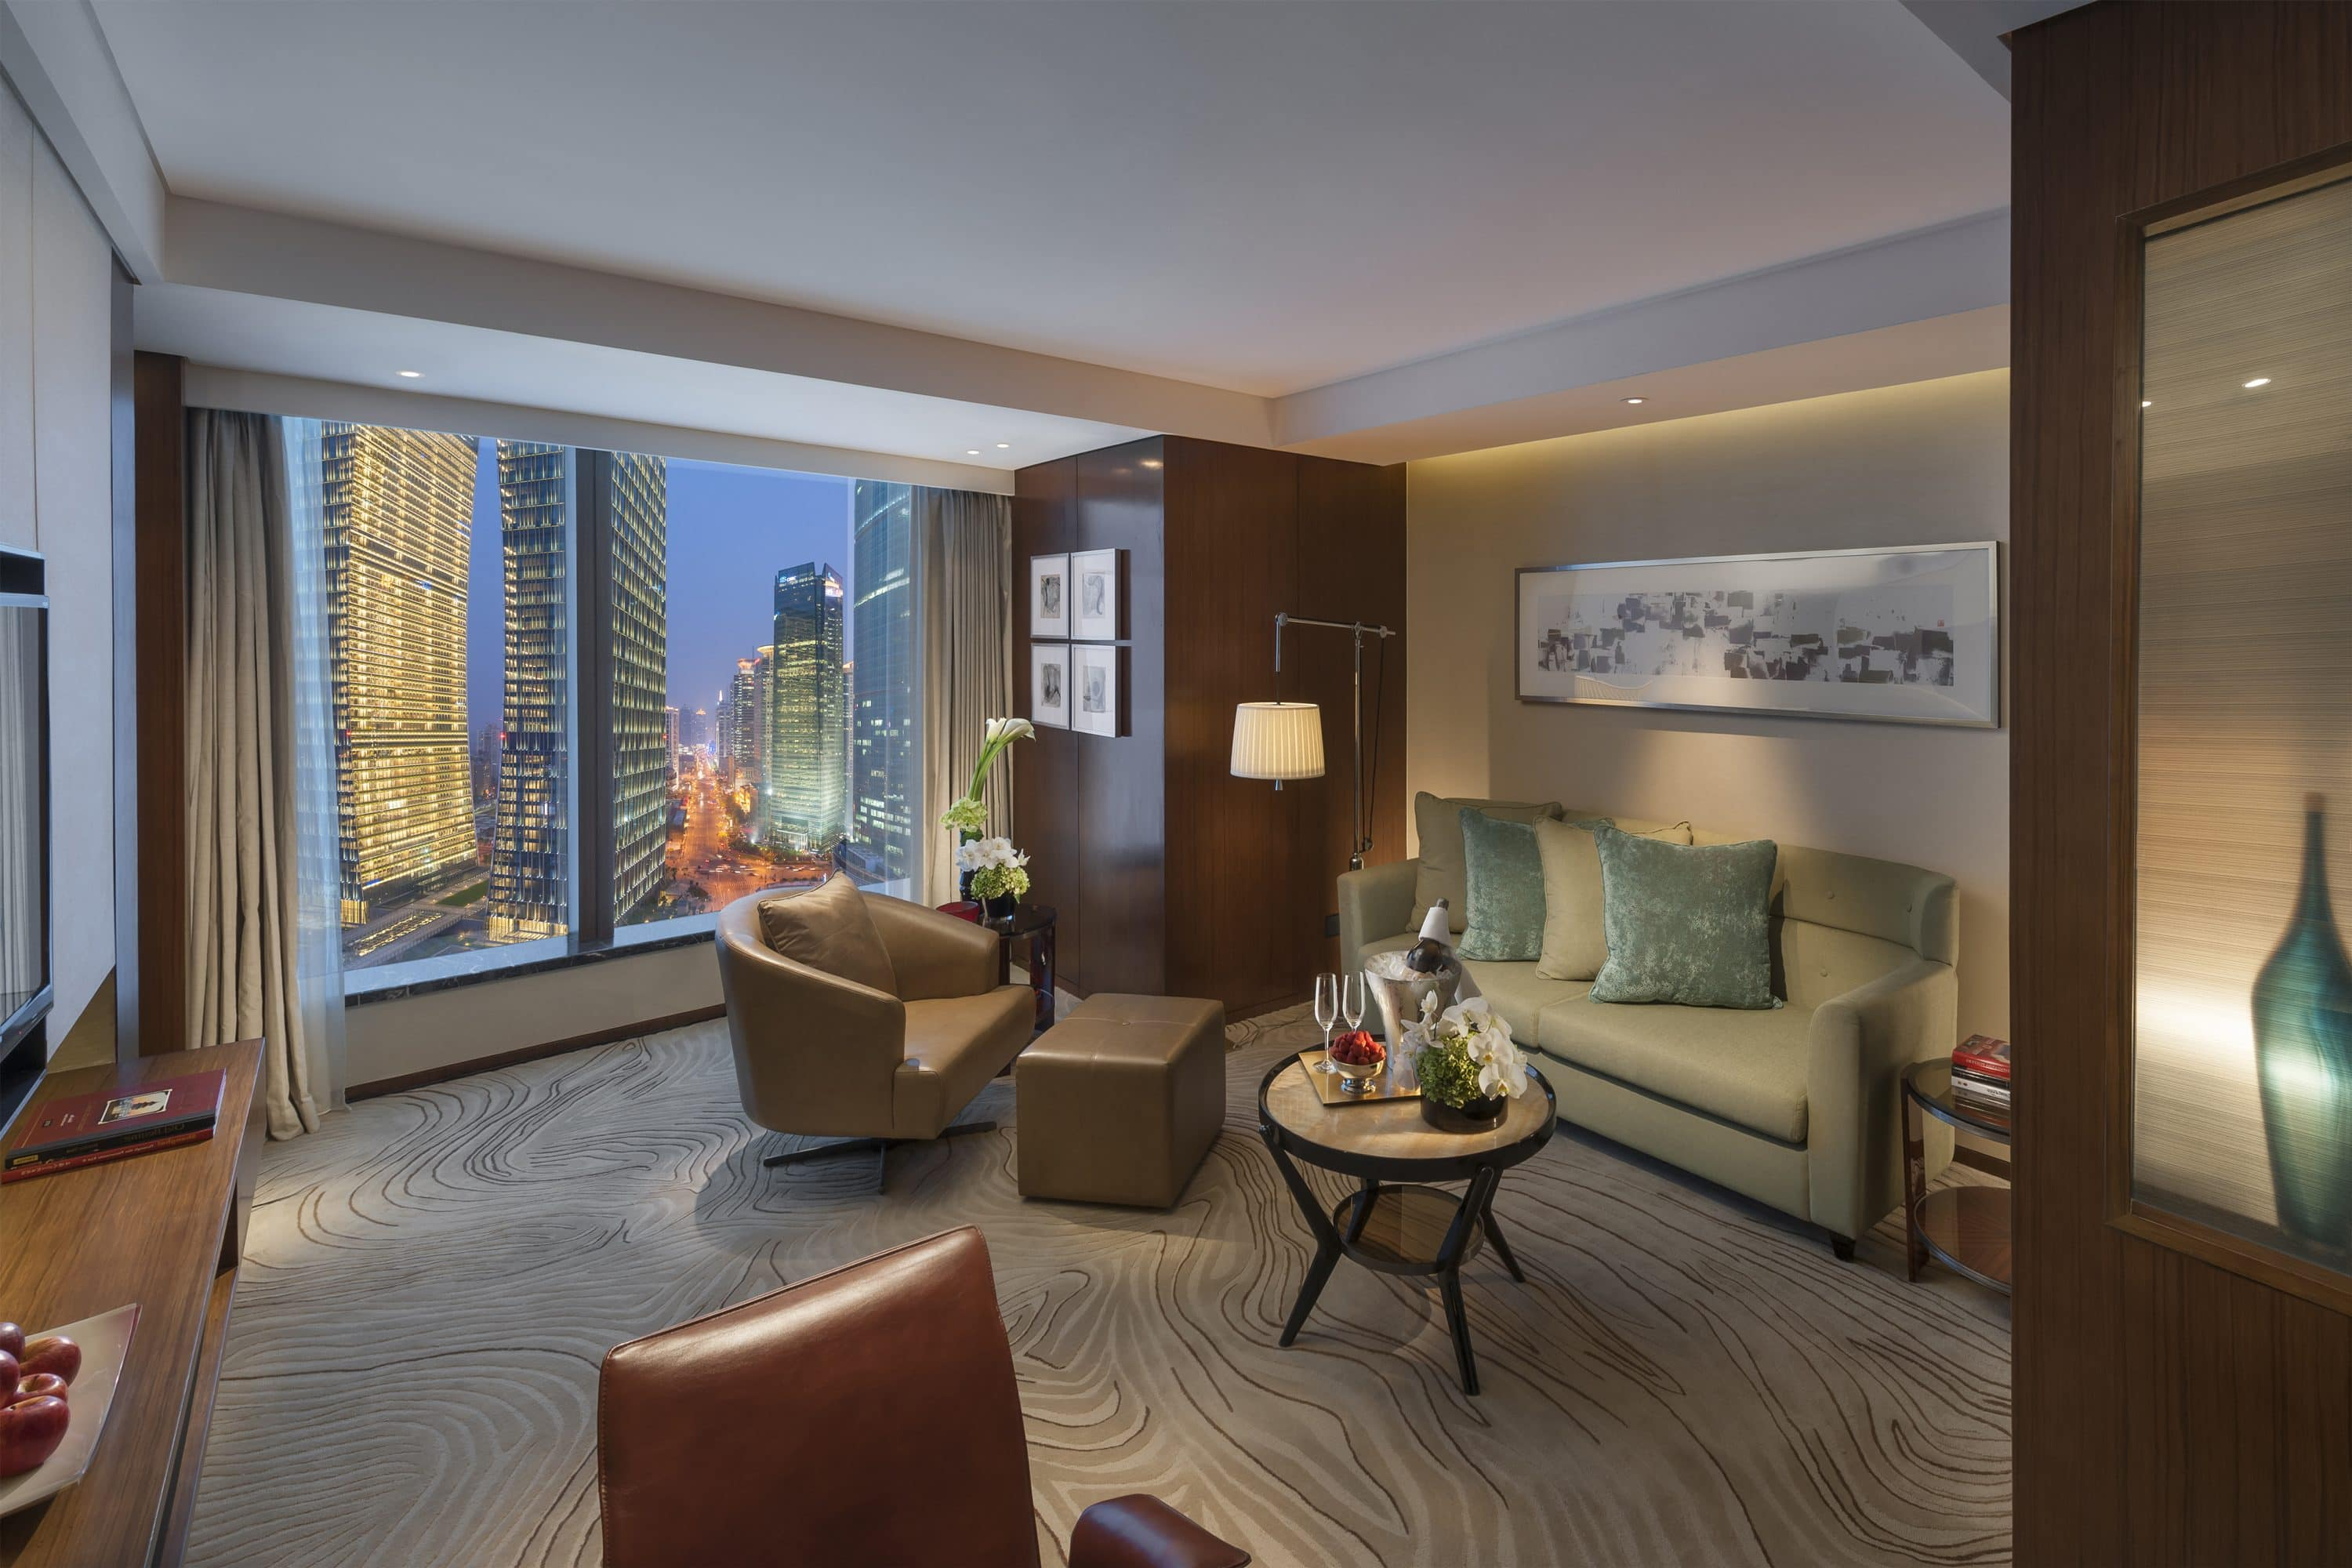 Executive Suite at Mandarin Oriental, Shanghai with view of harbour